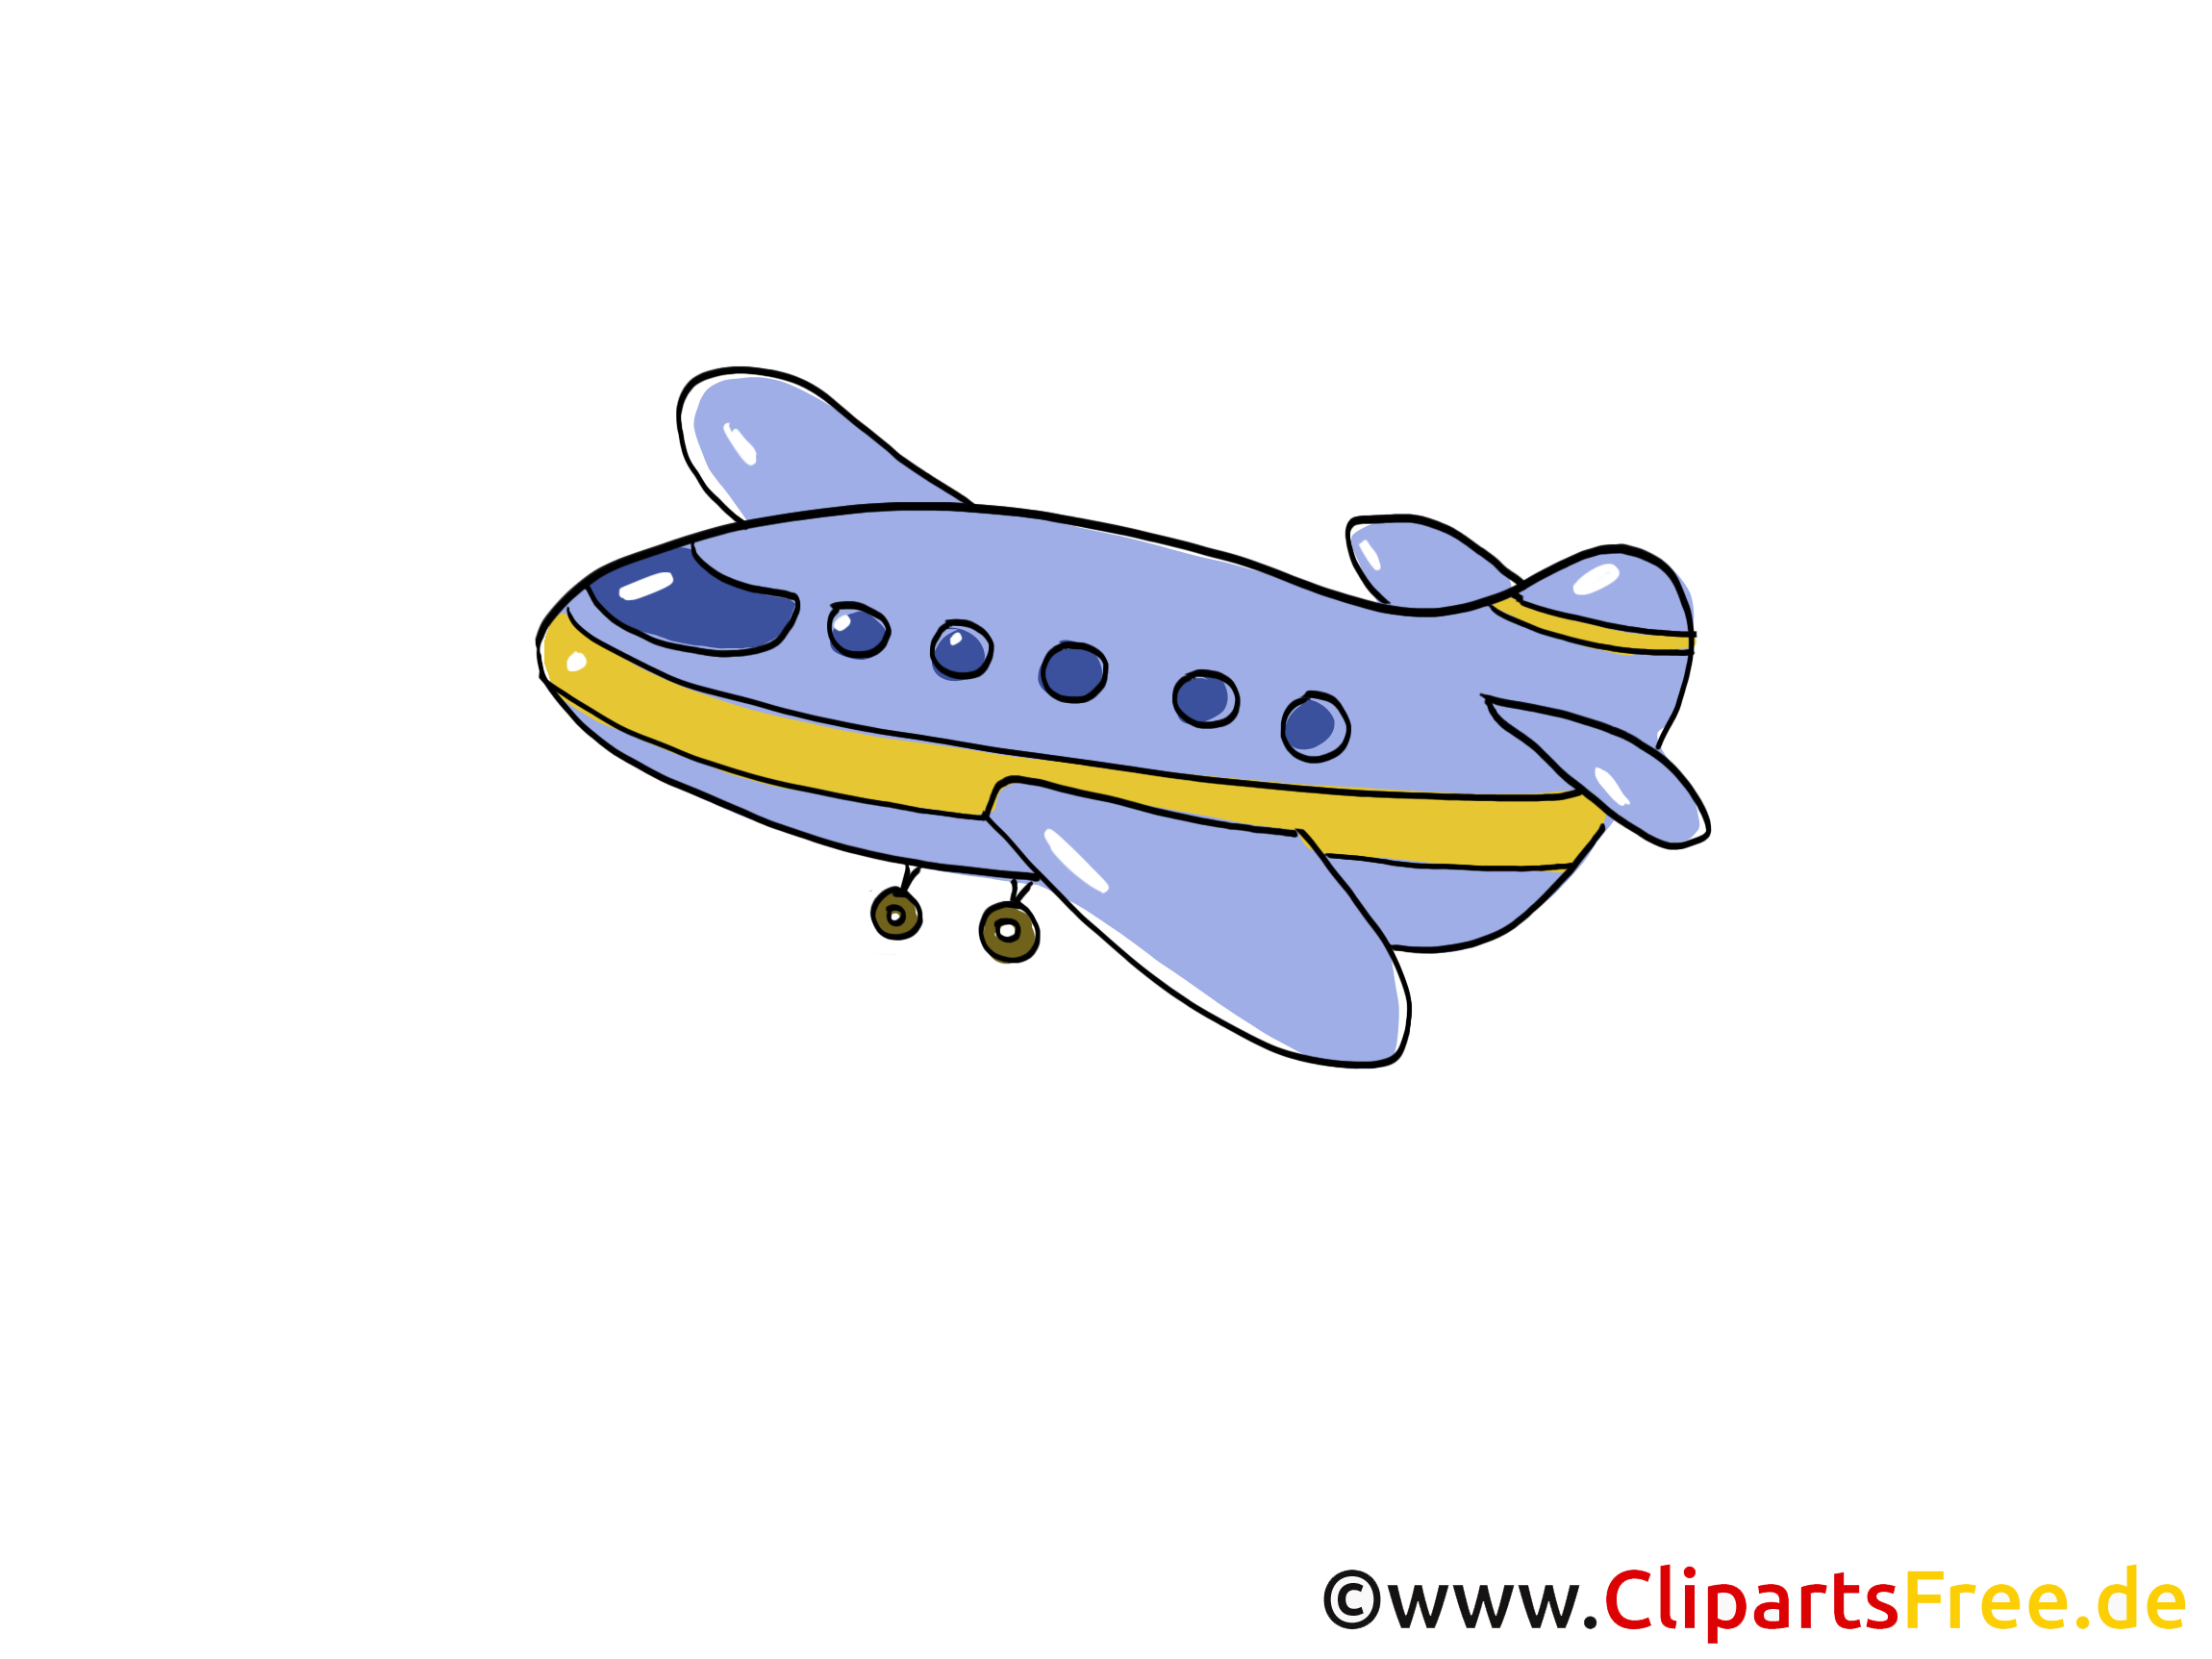 Avion dessins gratuits clipart gratuit technologie dessin picture image graphic clip art - Dessins gratuits a telecharger ...